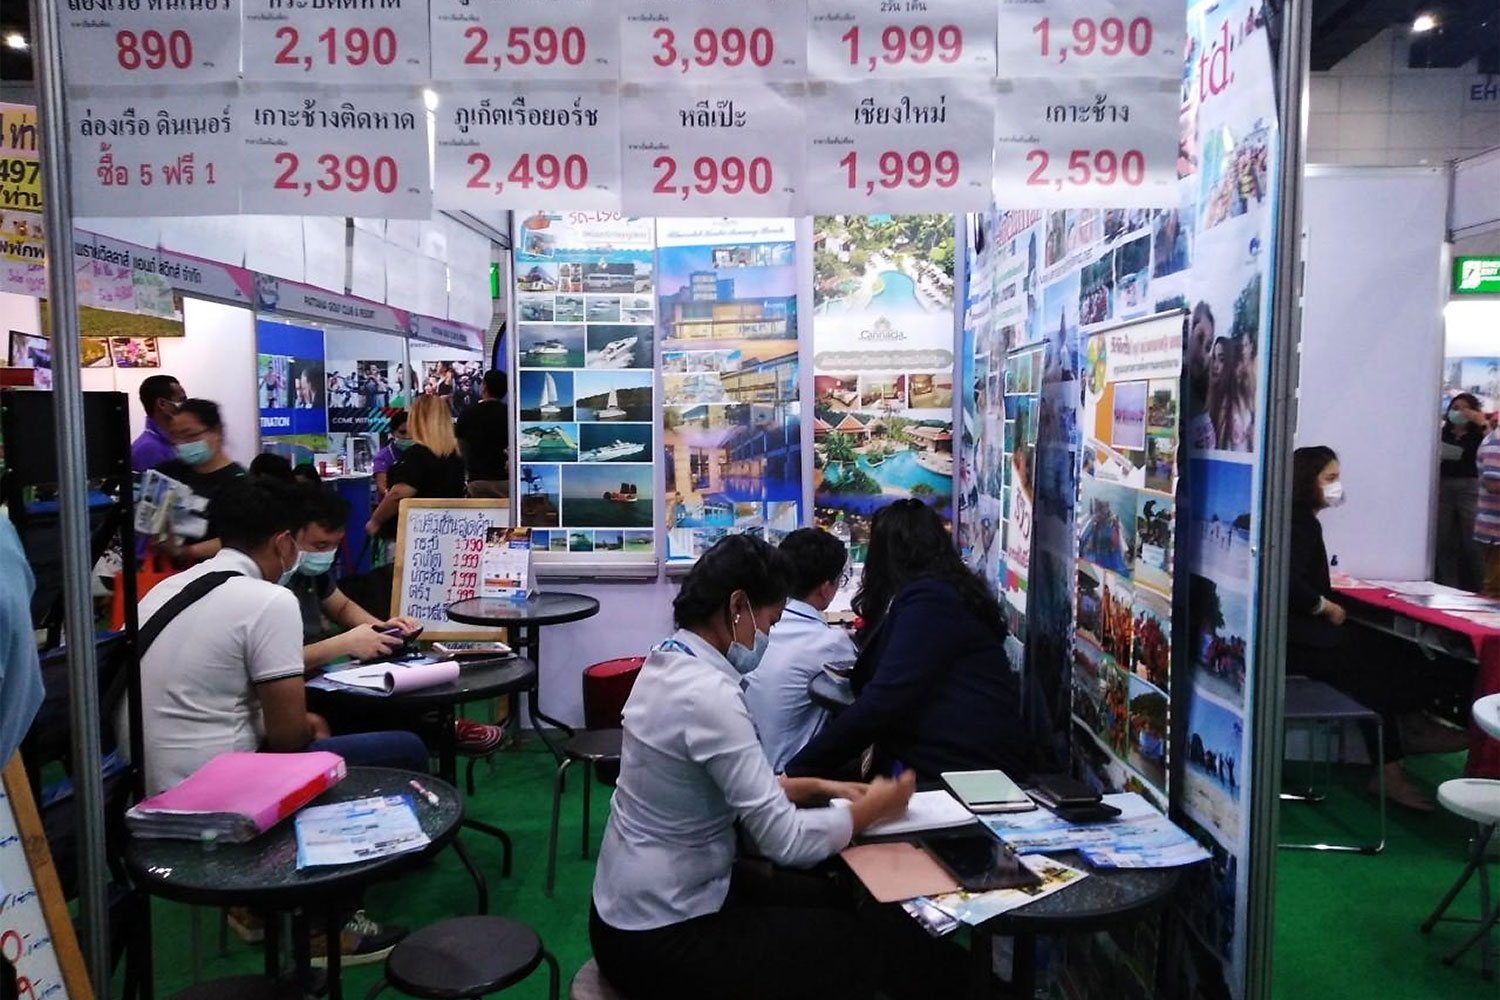 Domestic travel deals are displayed at a tourism fair. Tour operators would like more budget for designing flexible packages. (Bangkok Post photo)